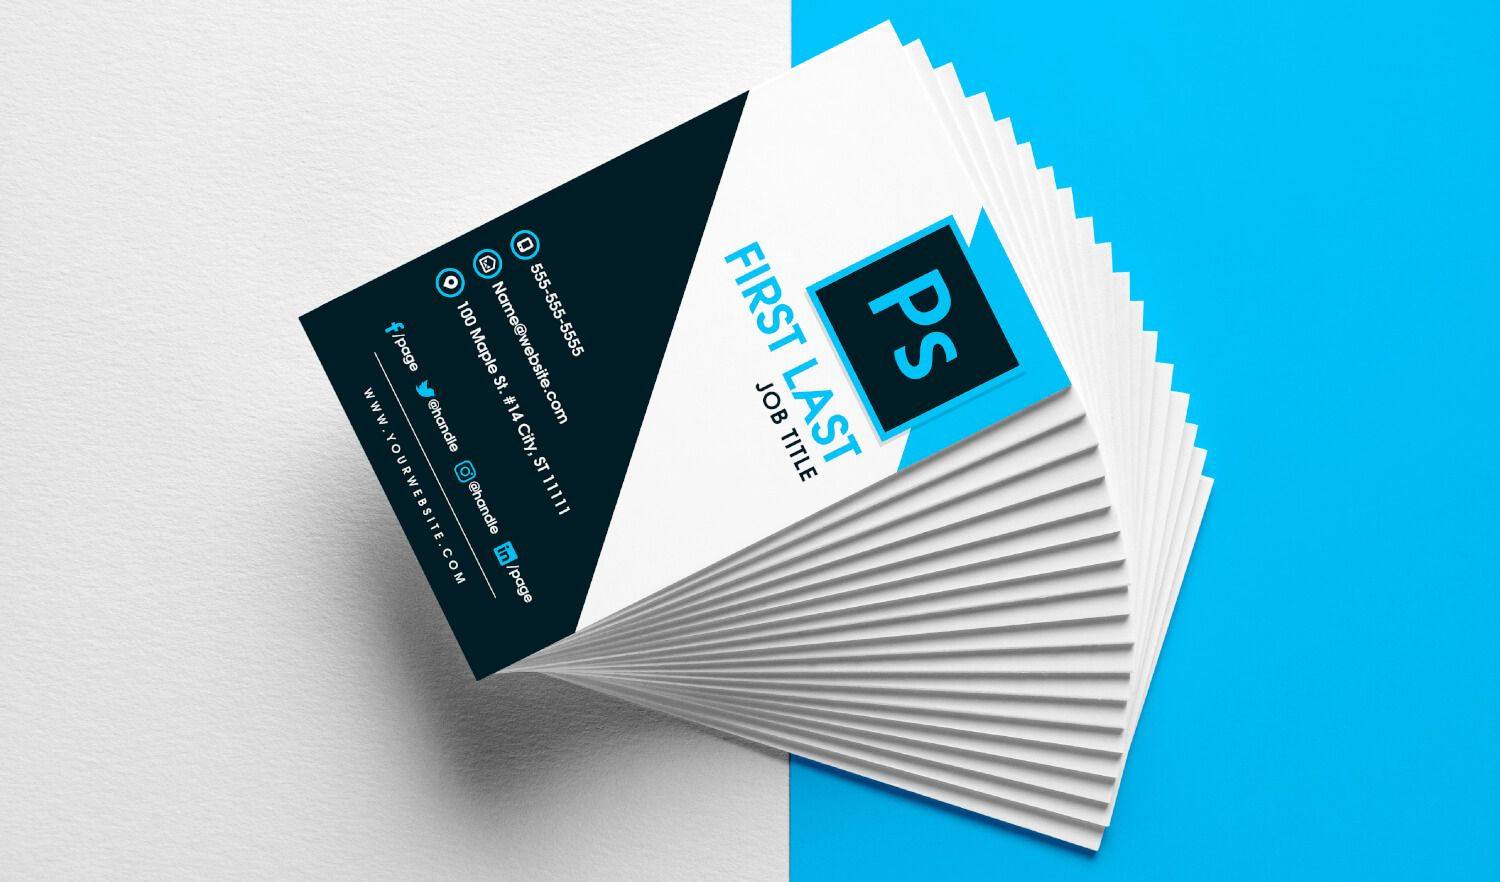 Free Vertical Business Card Template In Psd Format In Psd Name Card Te In 2020 Vertical Business Card Template Business Card Template Photoshop Visiting Card Templates